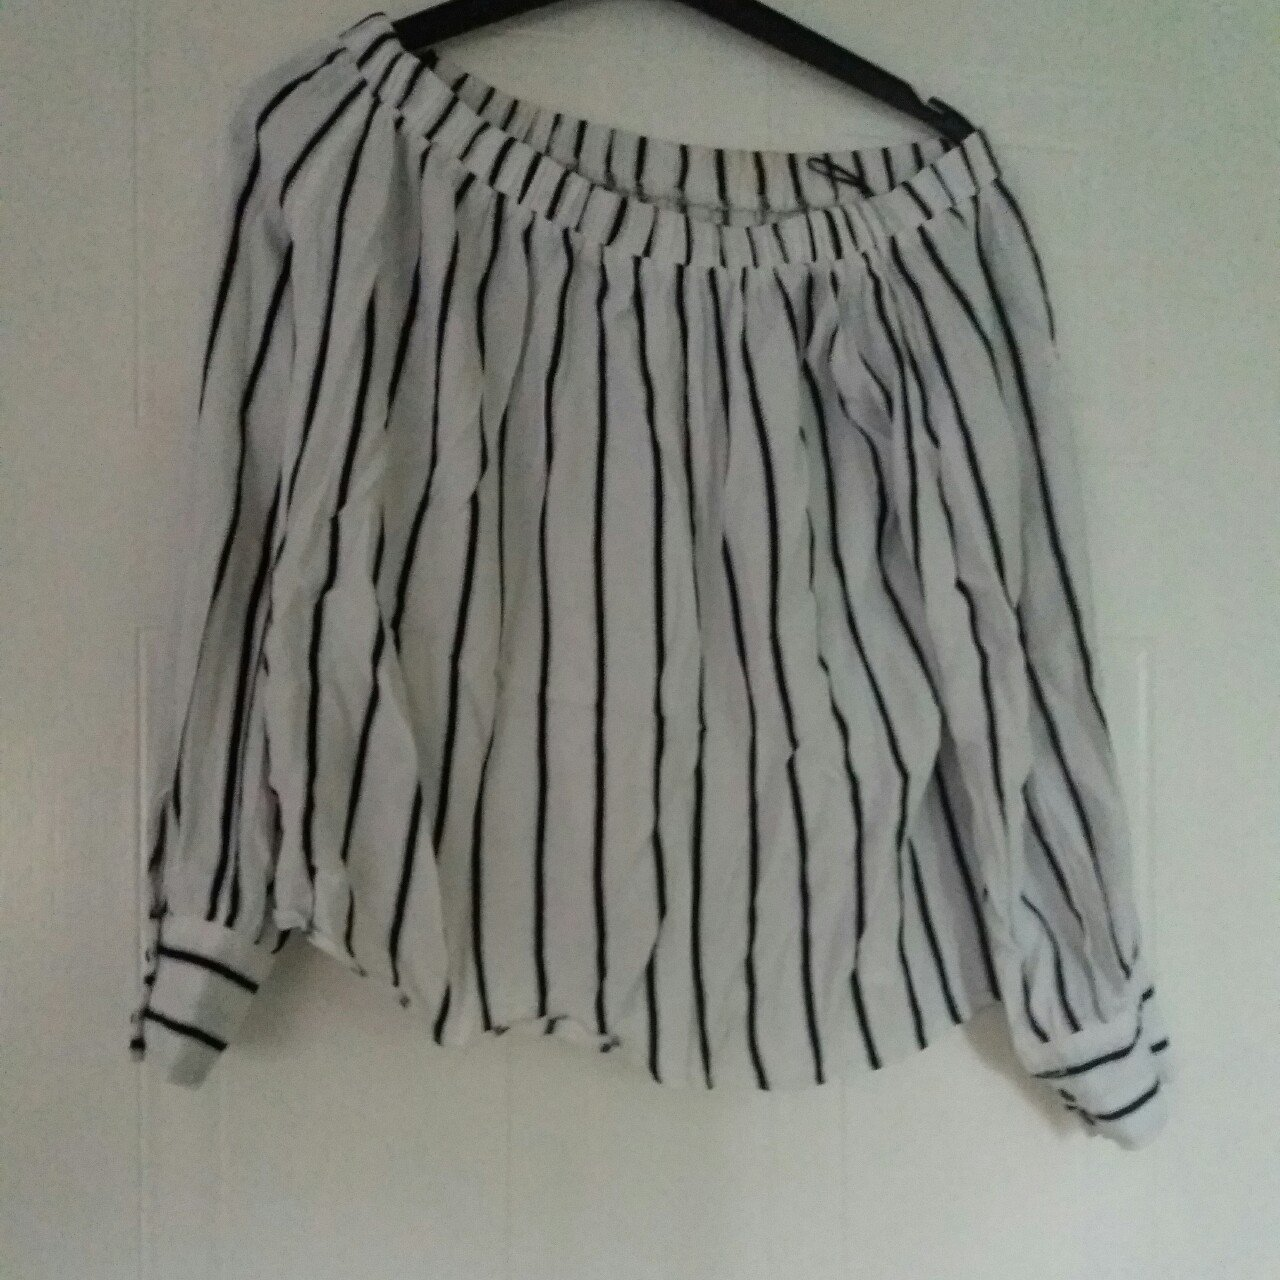 d7f29334f2c93 Size 10 Matalan bardot top . Only worn a few times but is to - Depop